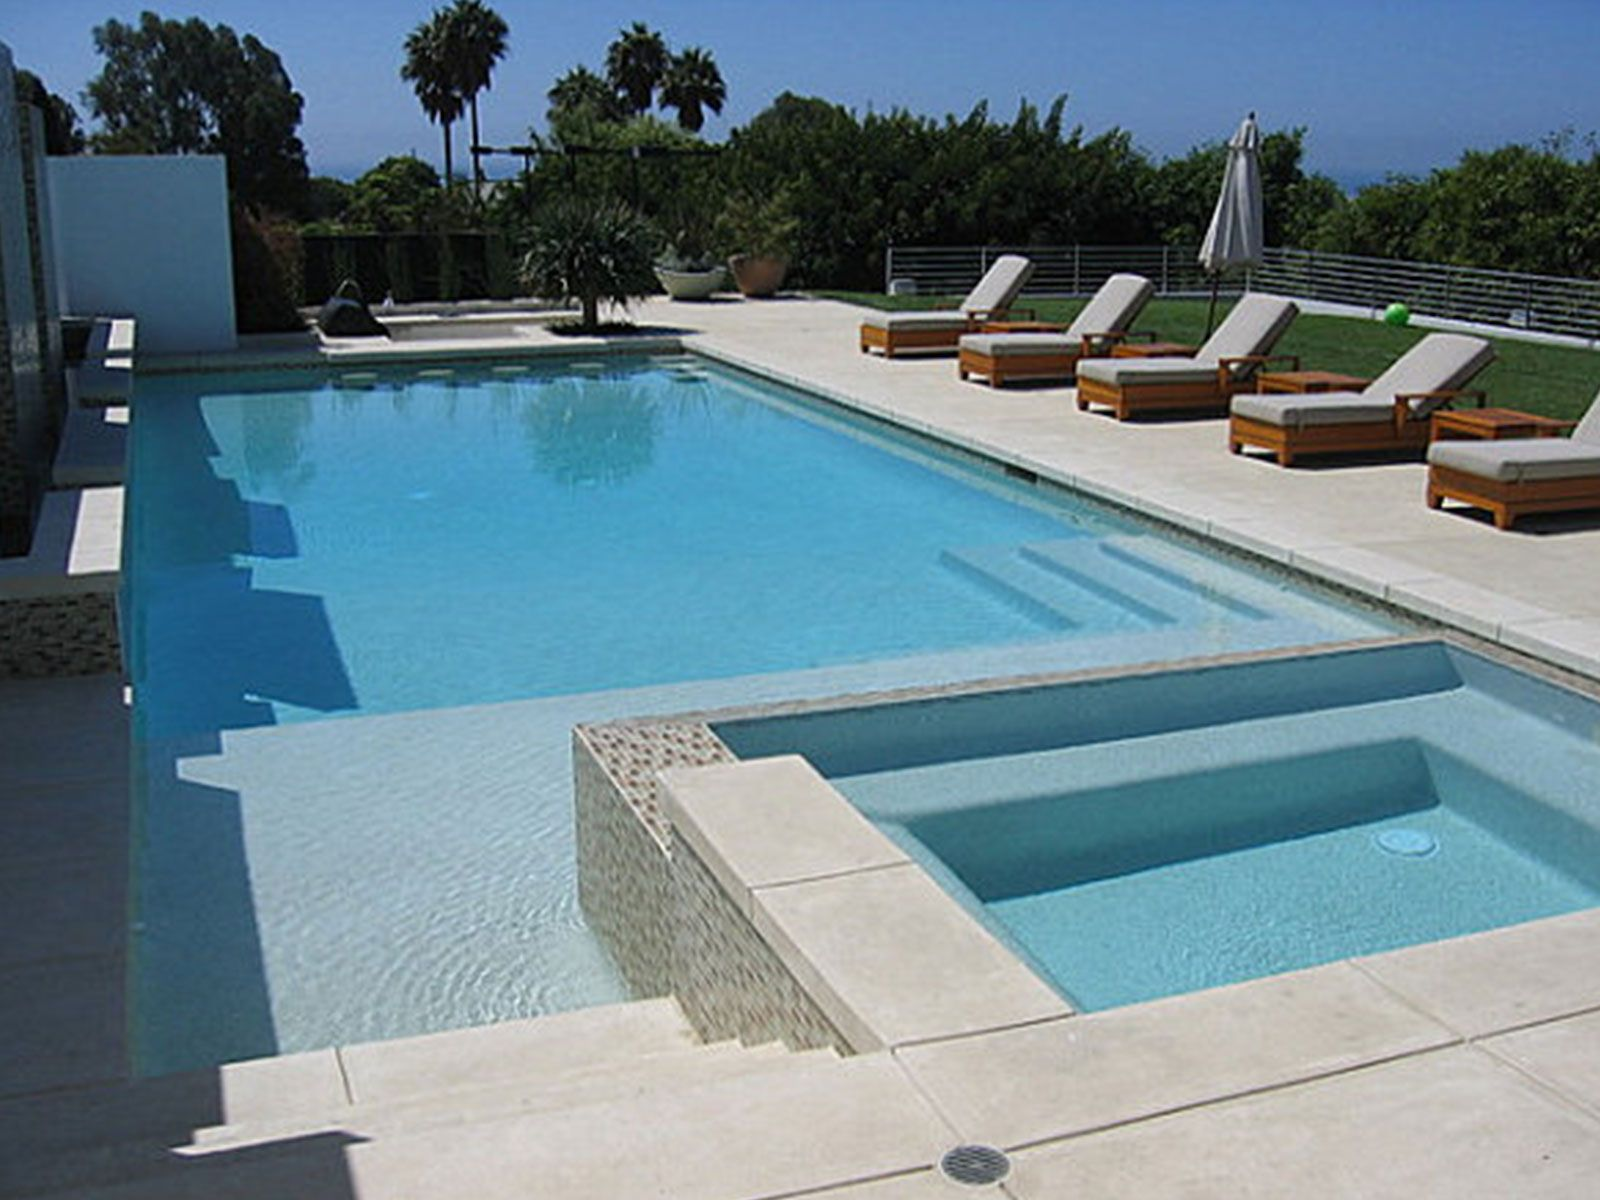 Simple swimming pool design image modern creative swimming Pool design plans